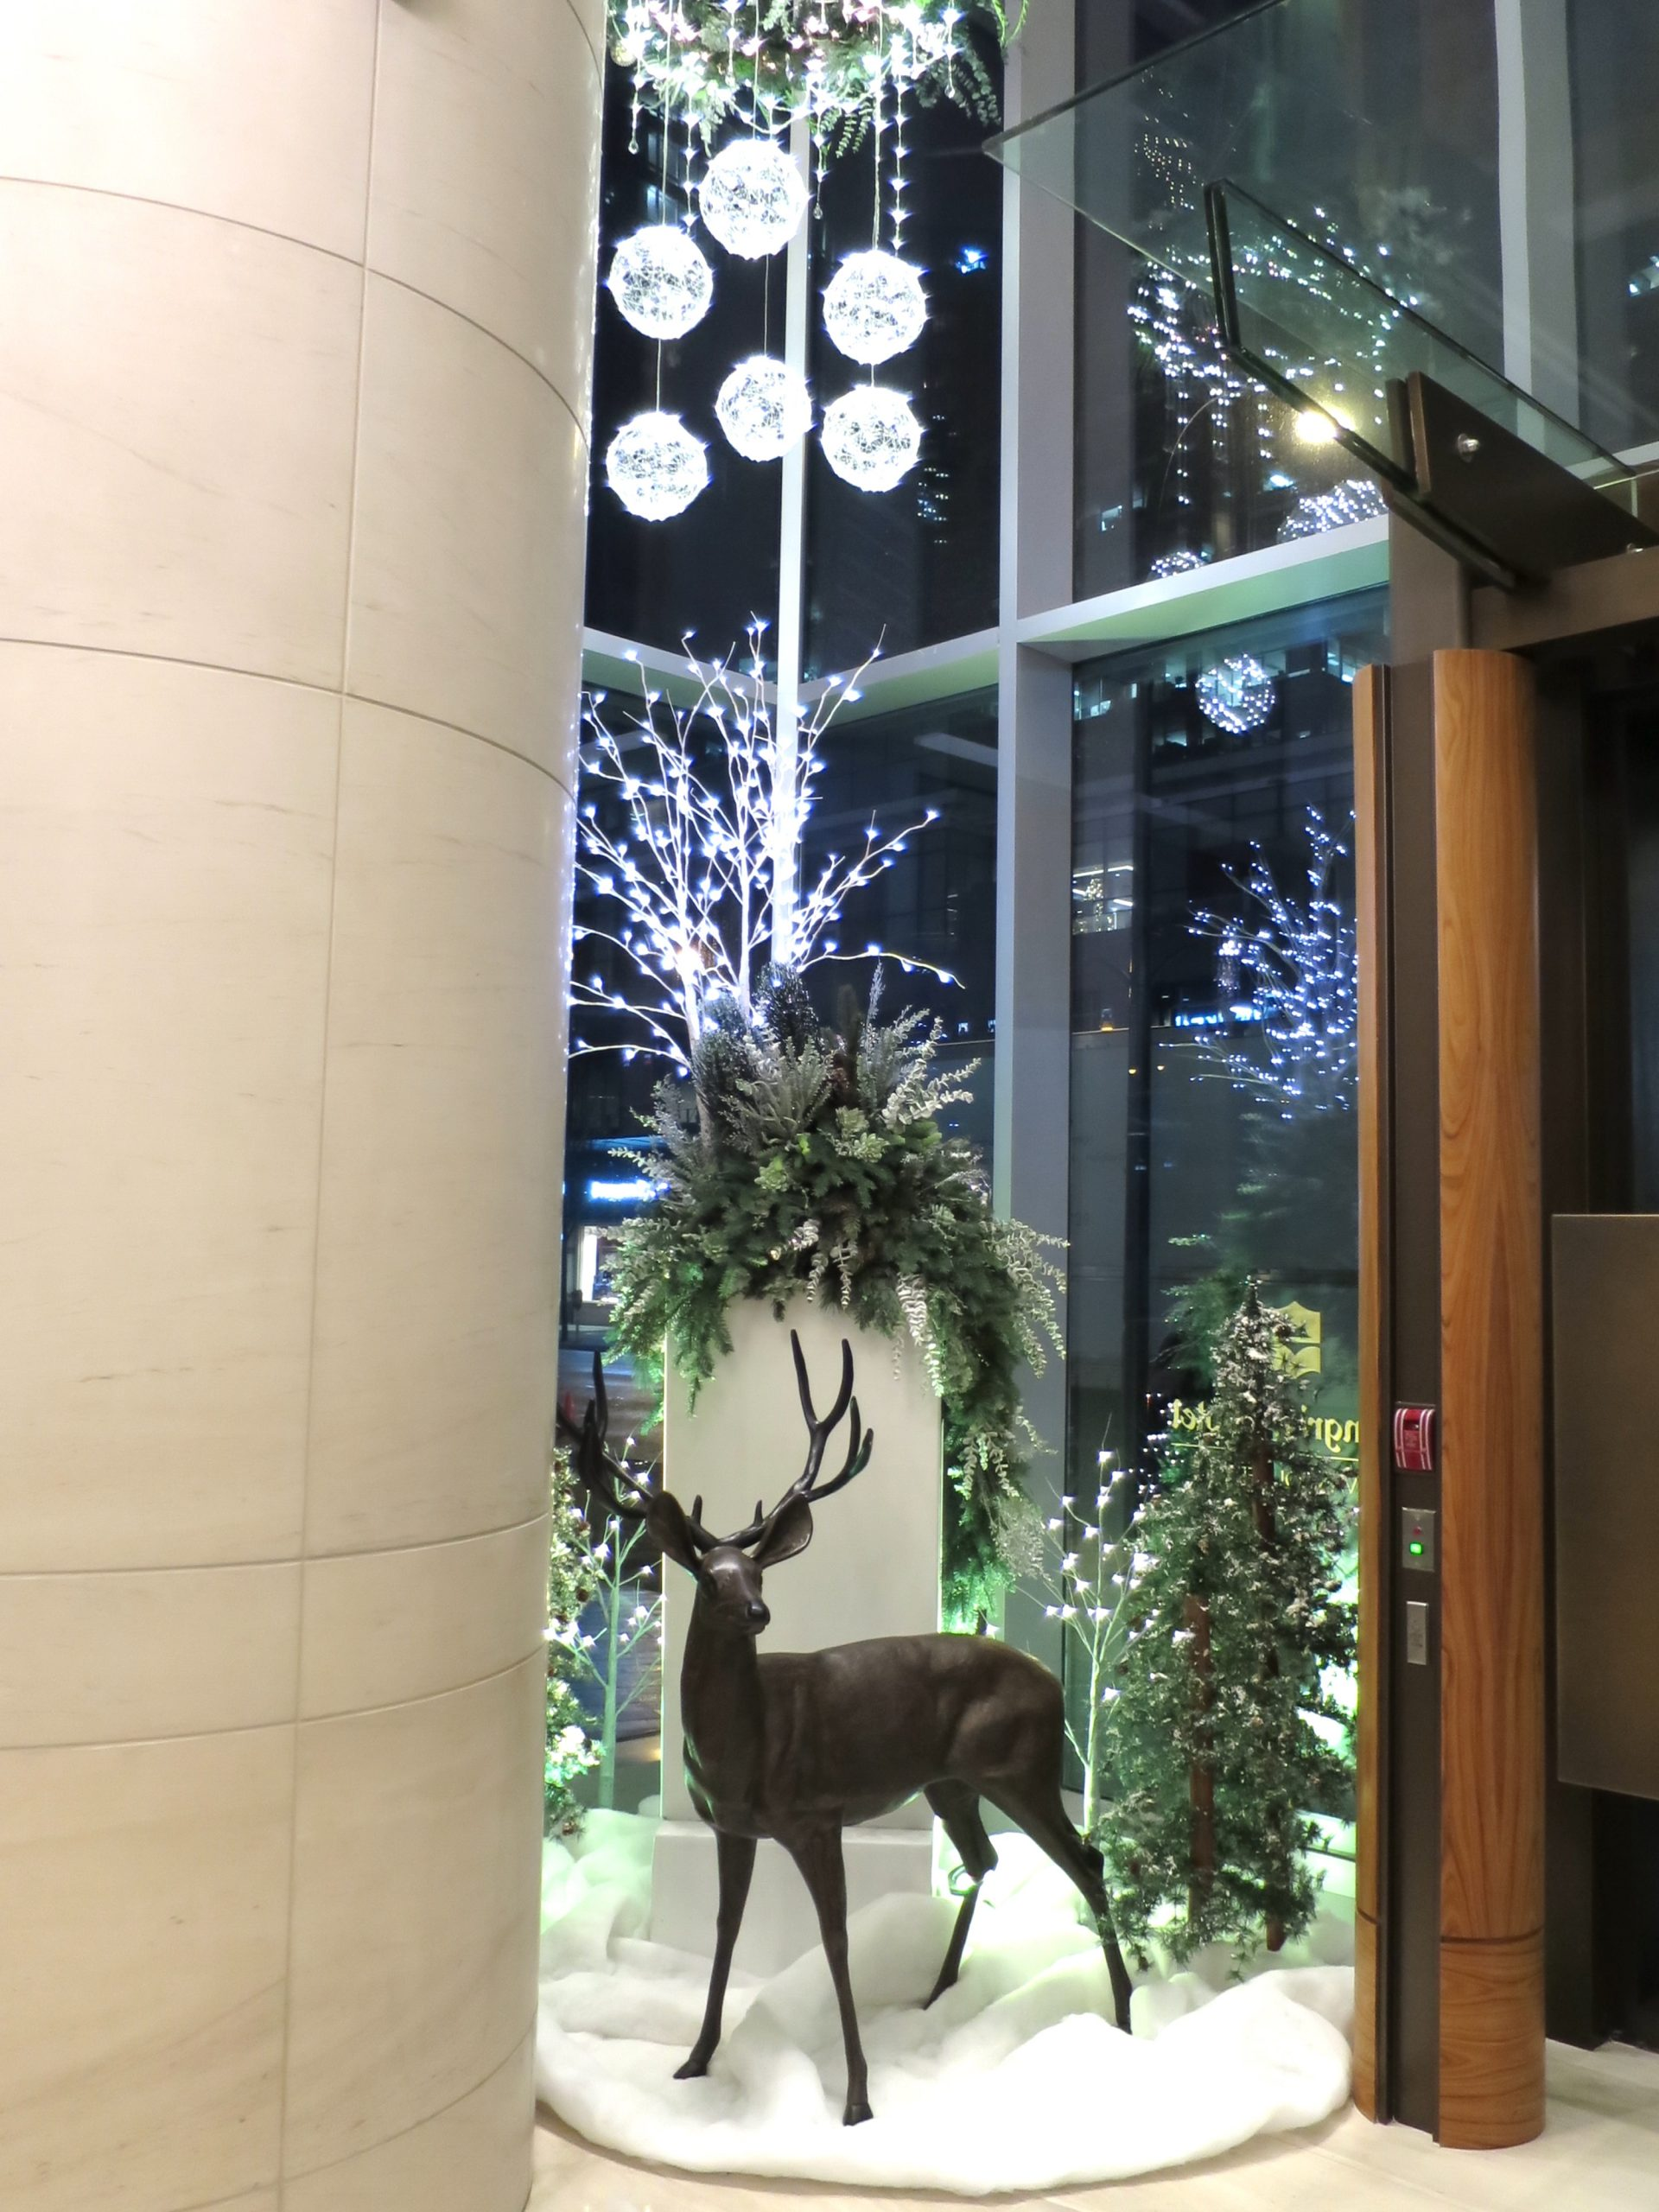 Custom Holiday window display at Shangri-La Hotel featuring large succulent and greenery planter, metal deer prop, alpine trees, snowblanket ground cover and custom wreath chandelier